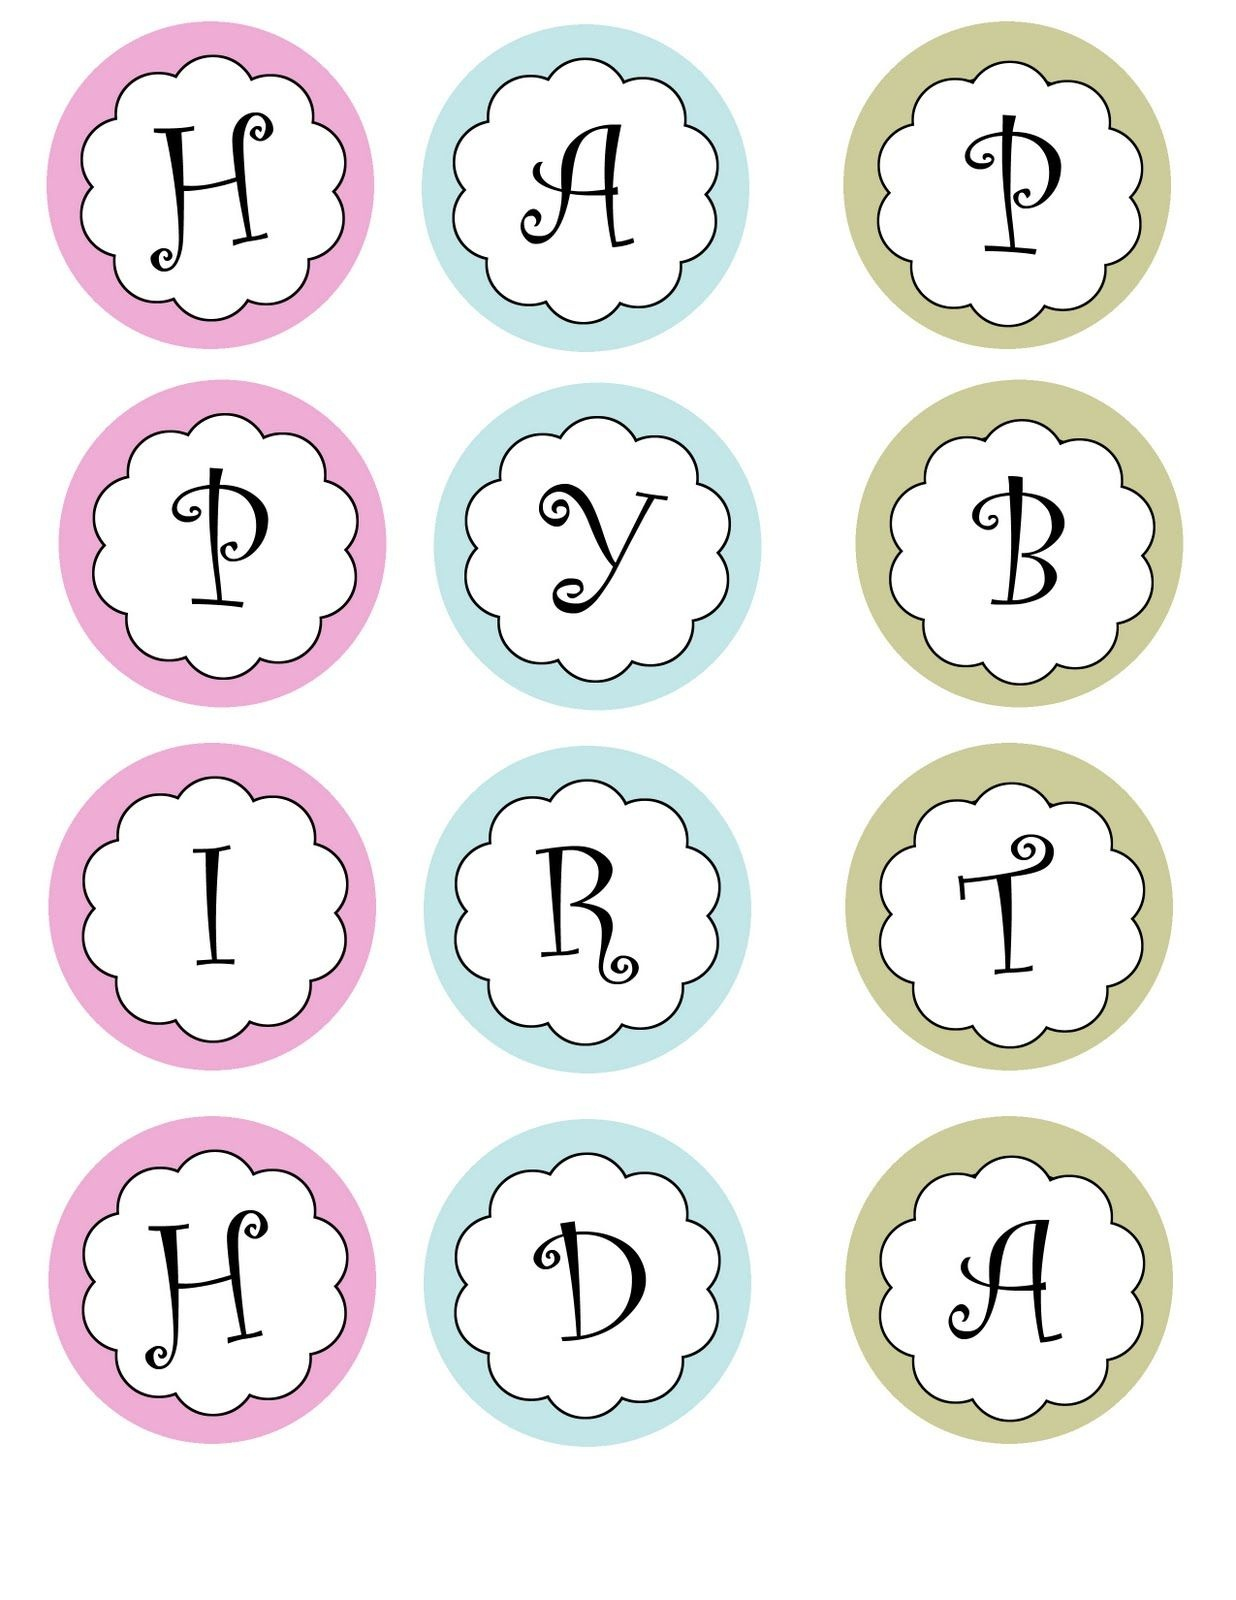 Printable Banners Templates Free | Print Your Own Birthday Banner - Free Printable Birthday Graph